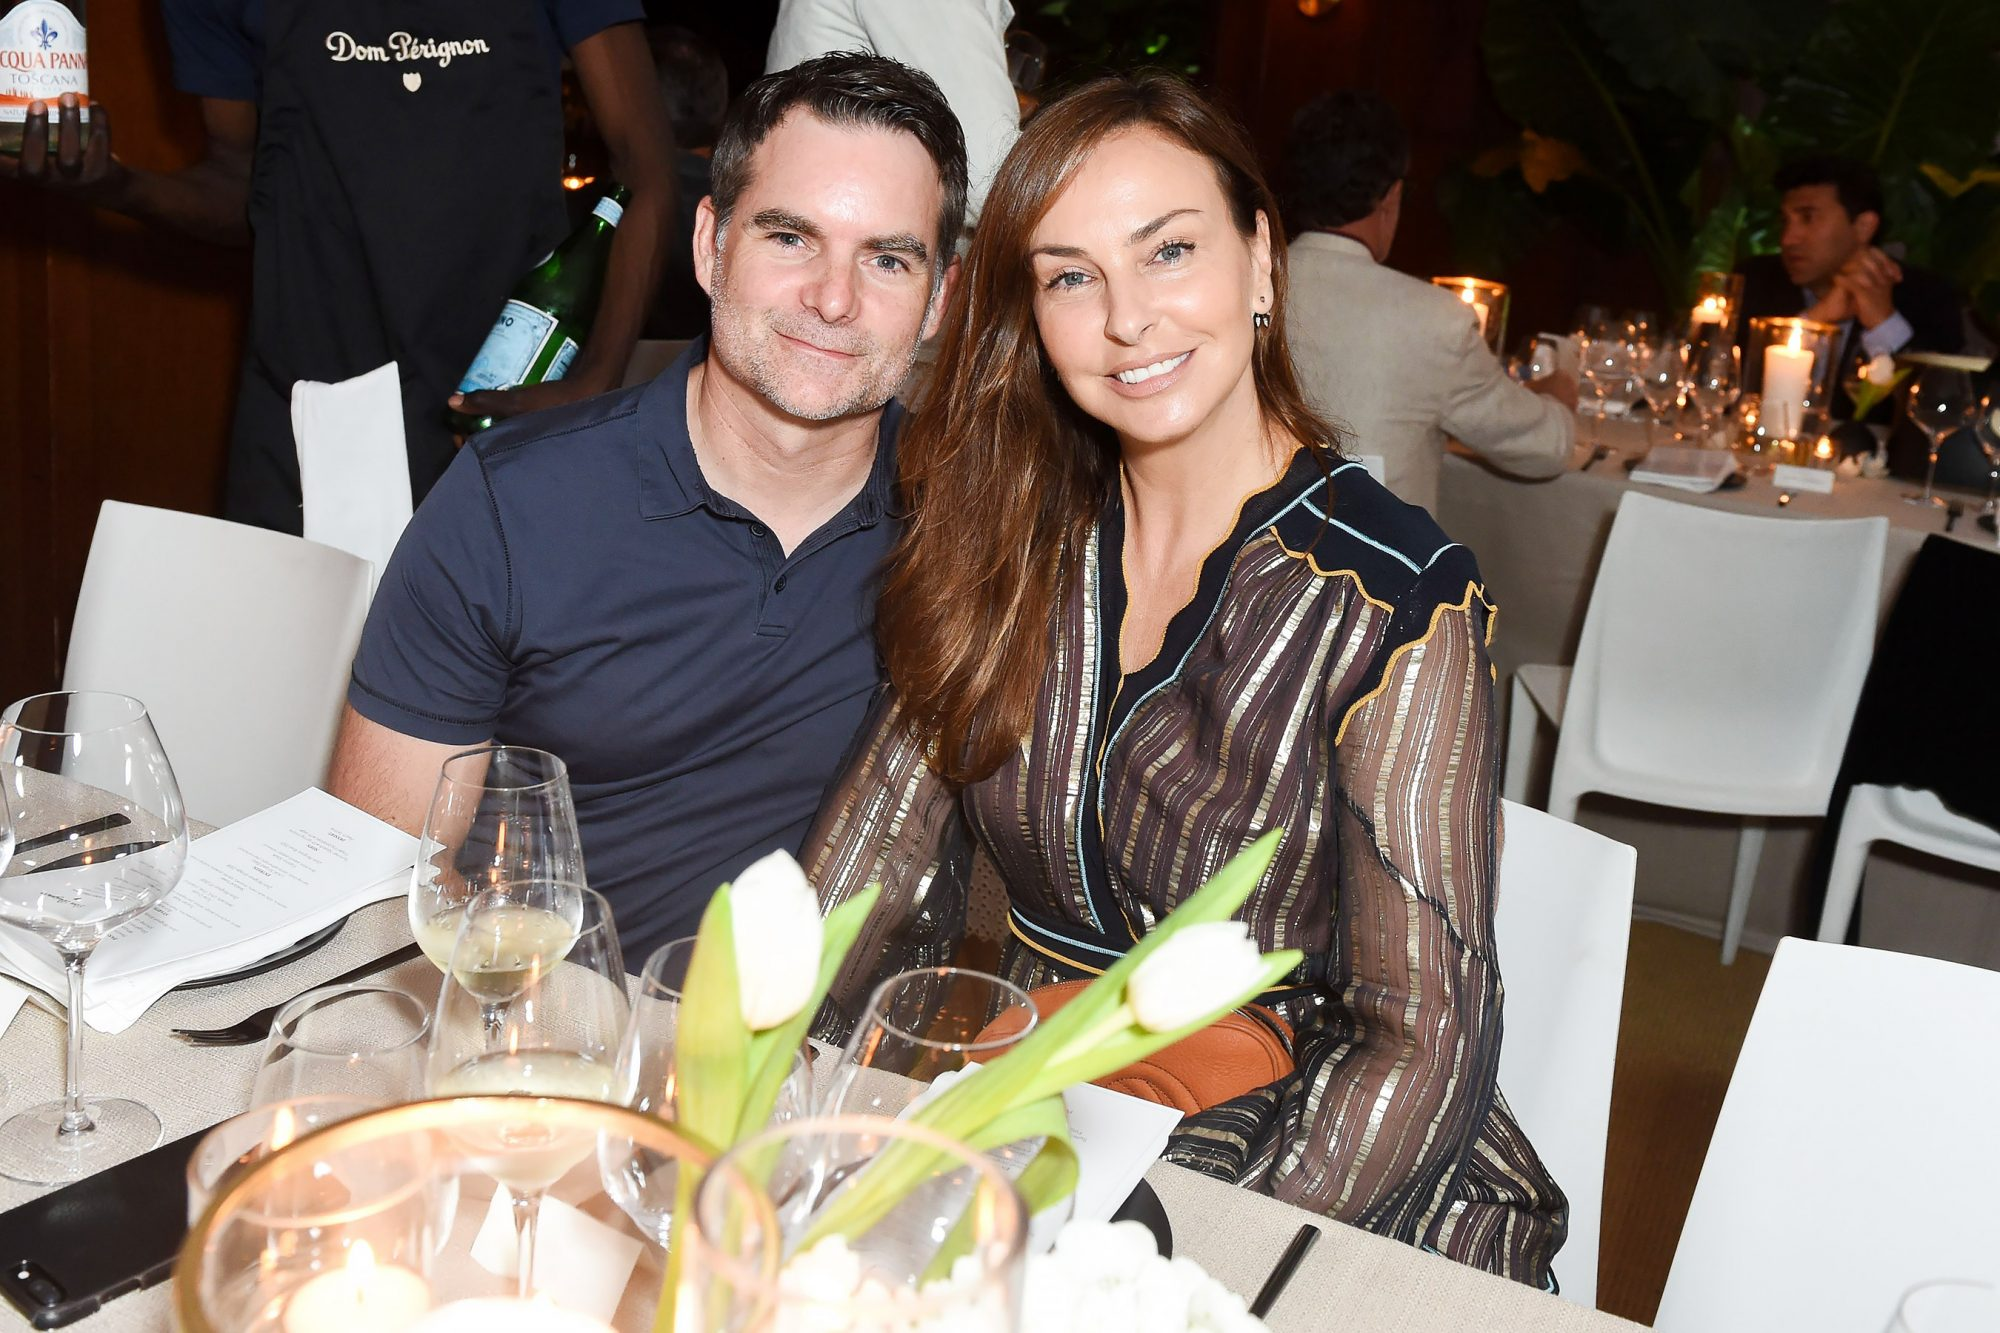 Dom Perignon dinner at Moby's, New York, USA - 14 Jul 2018